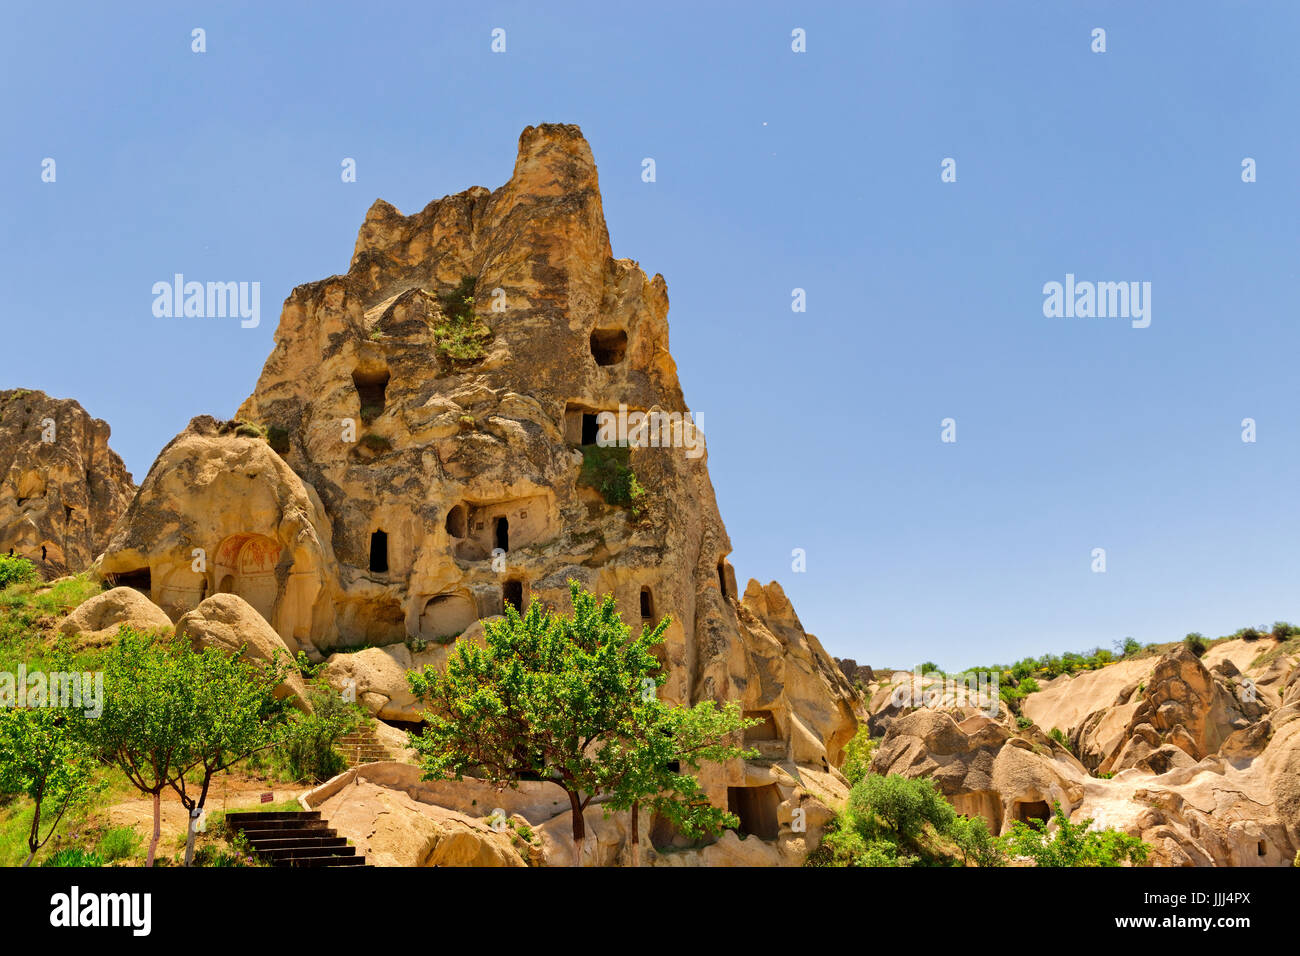 Cave dwellings at Goreme National Park, Cappadocia, Turkey. - Stock Image